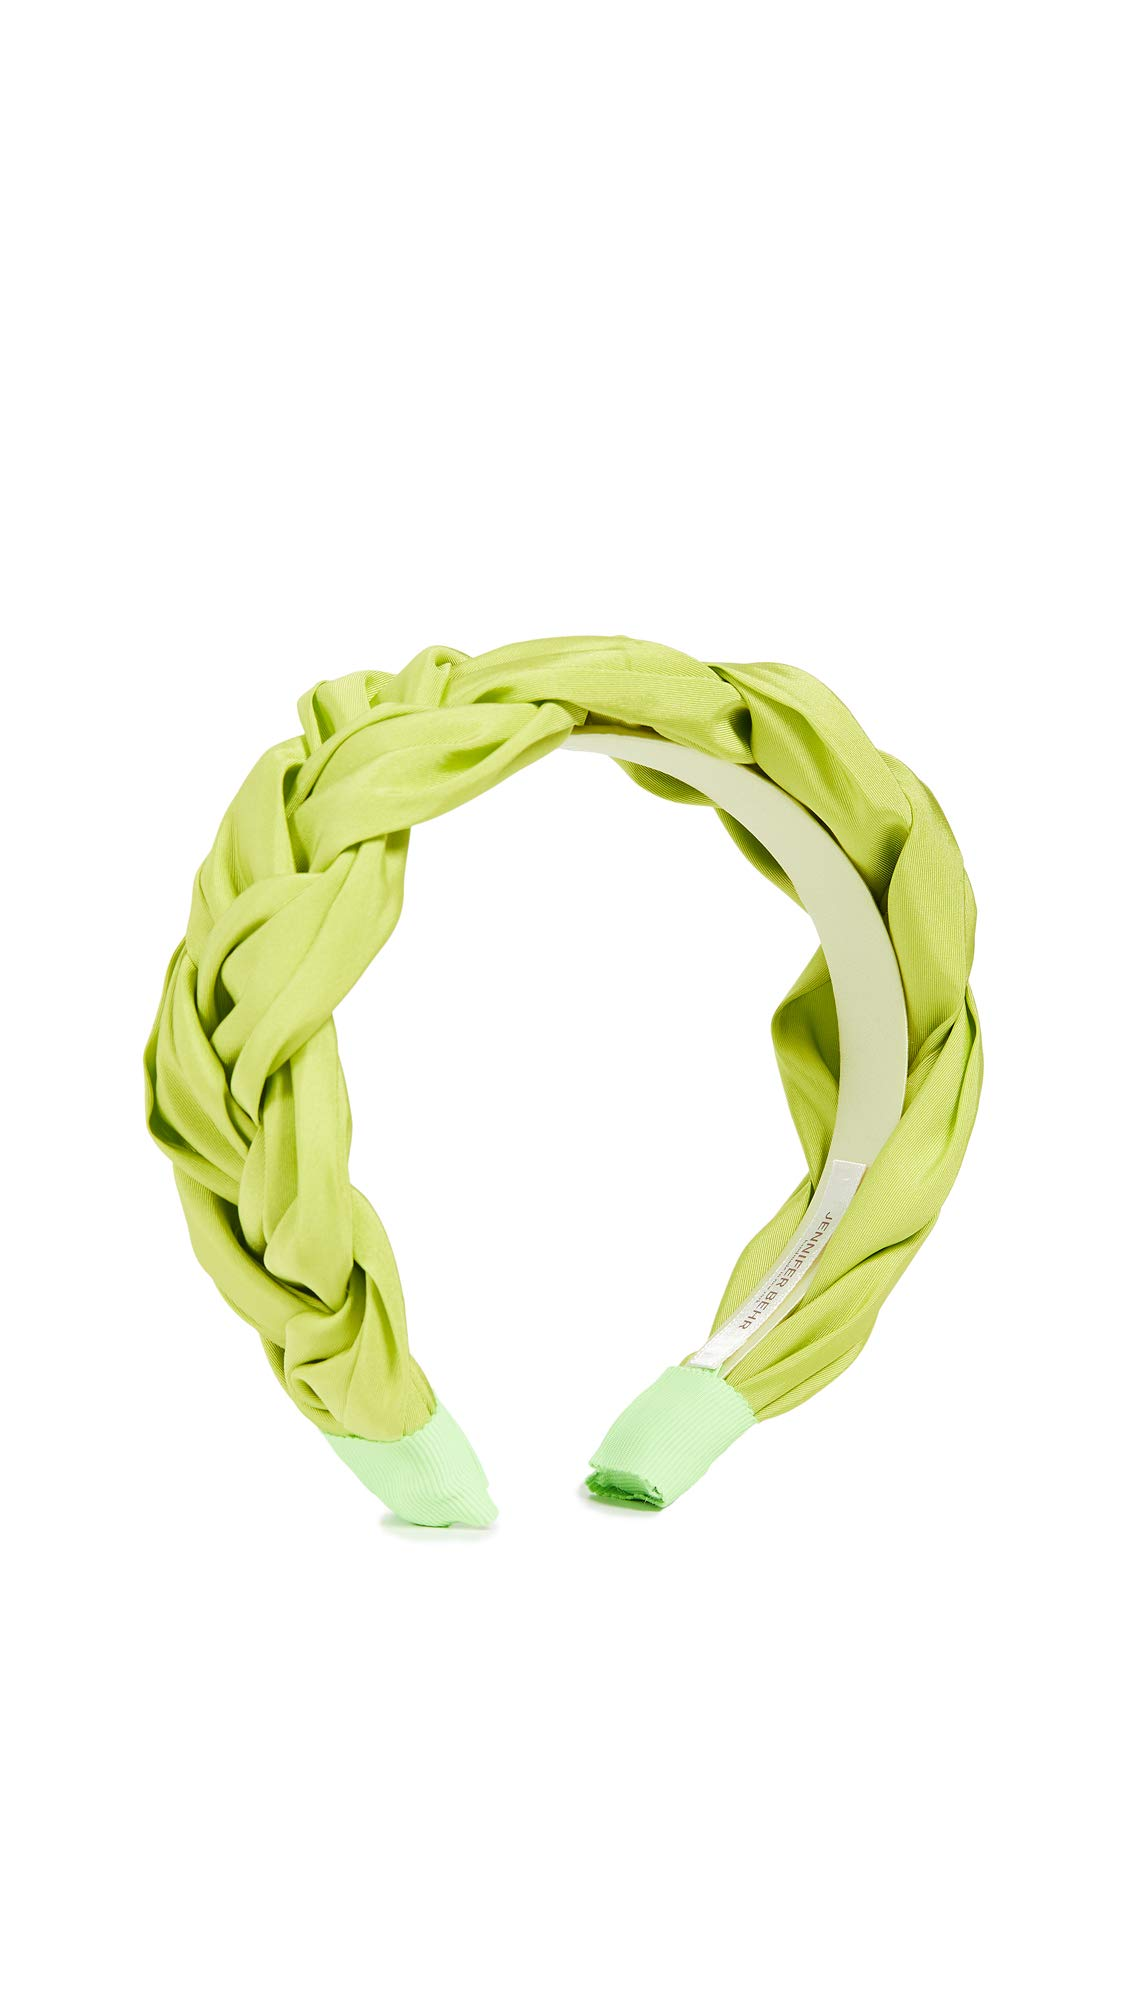 Jennifer Behr Women's Lorelei Headband, Acid Green, One Size